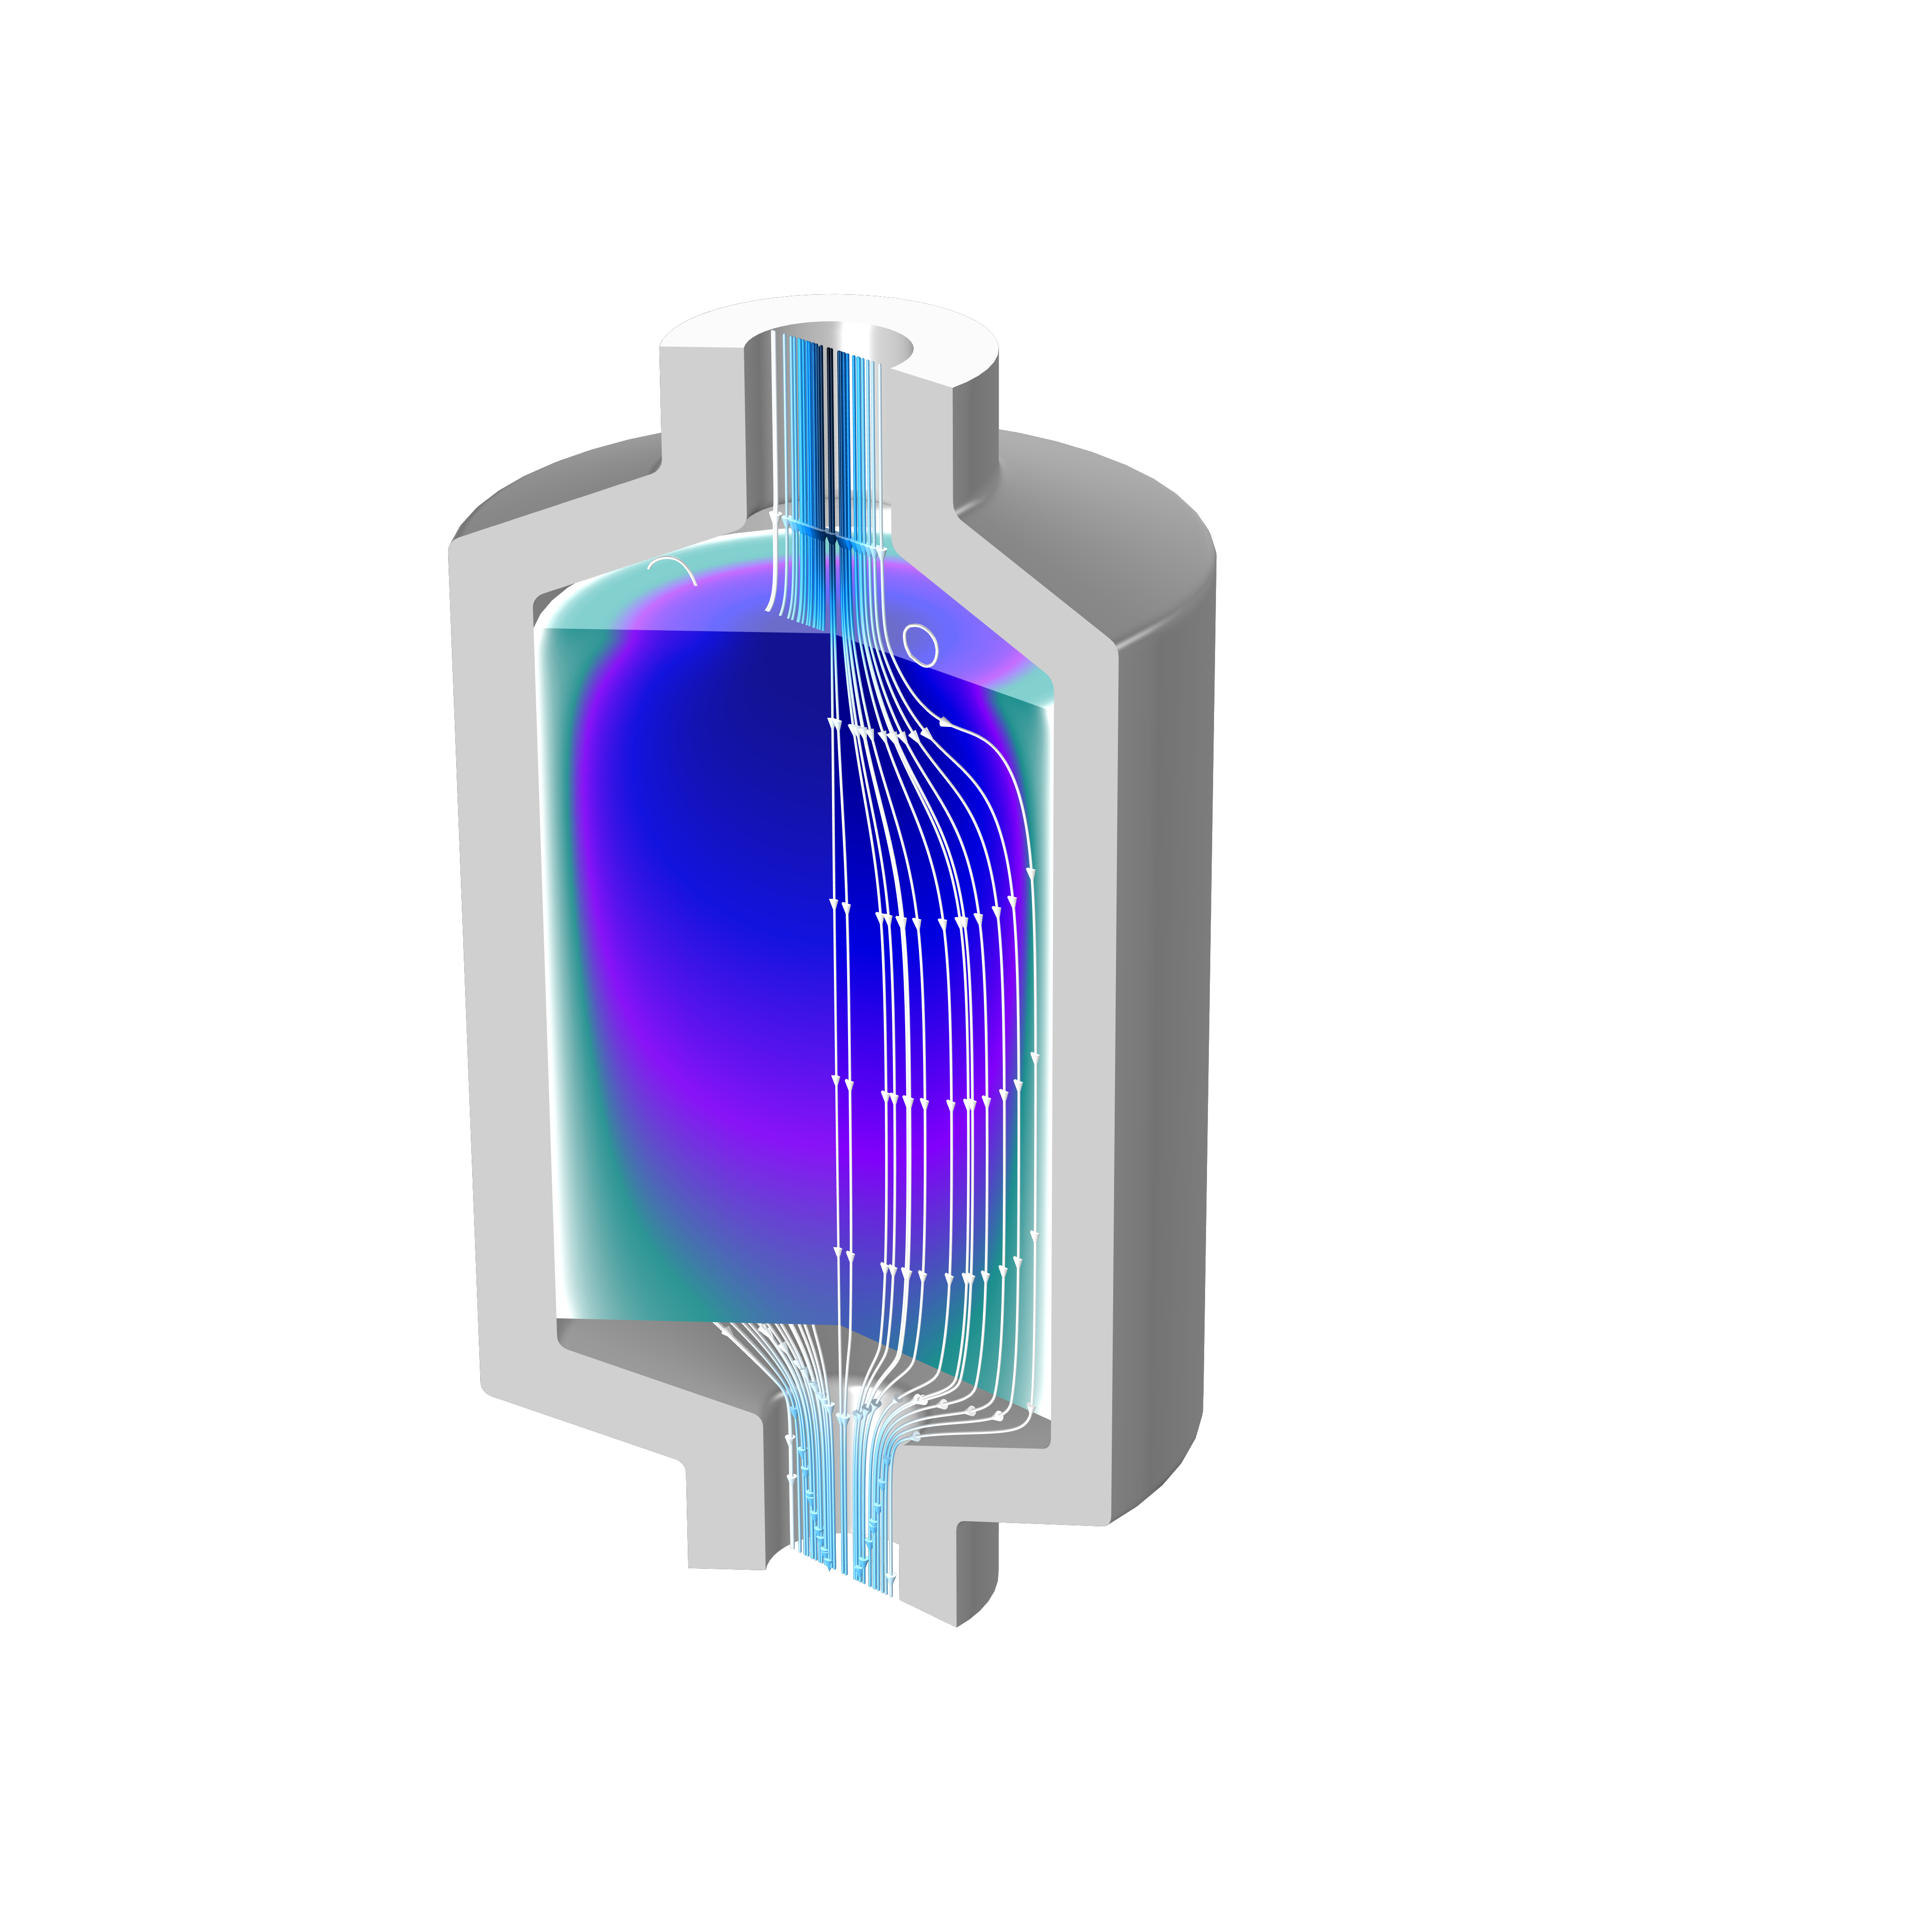 A packed-bed latent heat storage tank model with the flow visualized as streamlines.